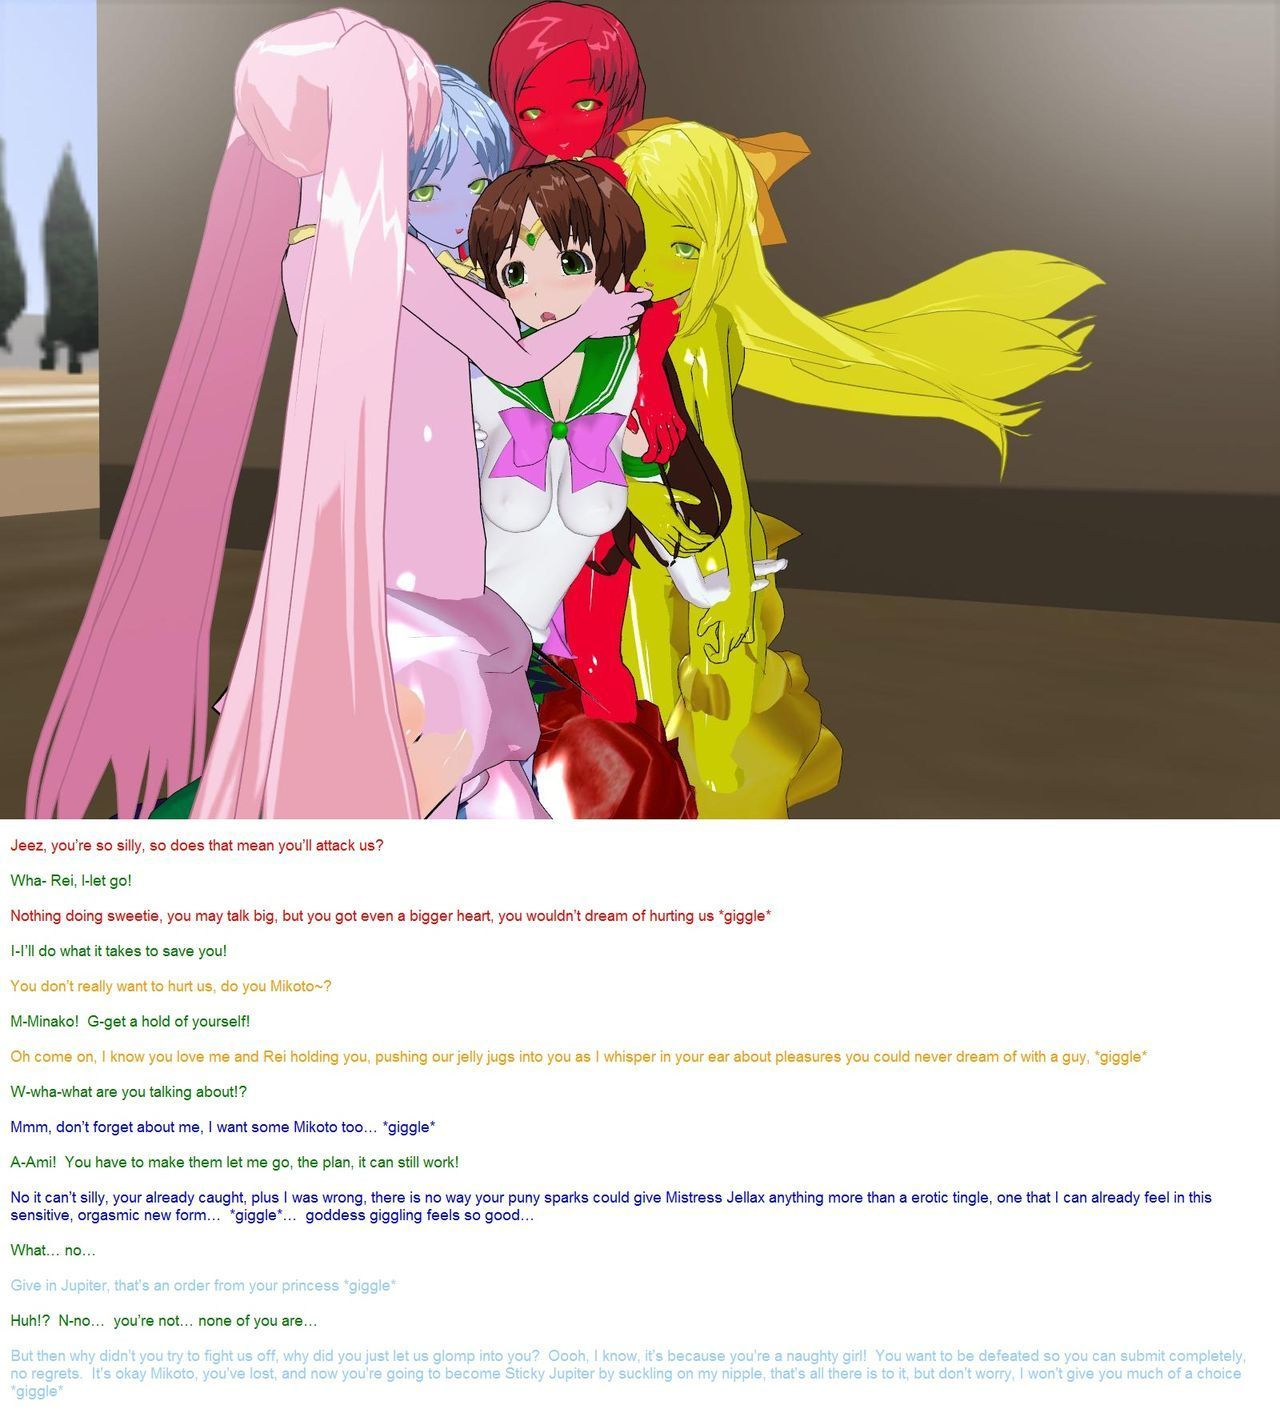 Just Jellax by Detatched and RB9 - part 3